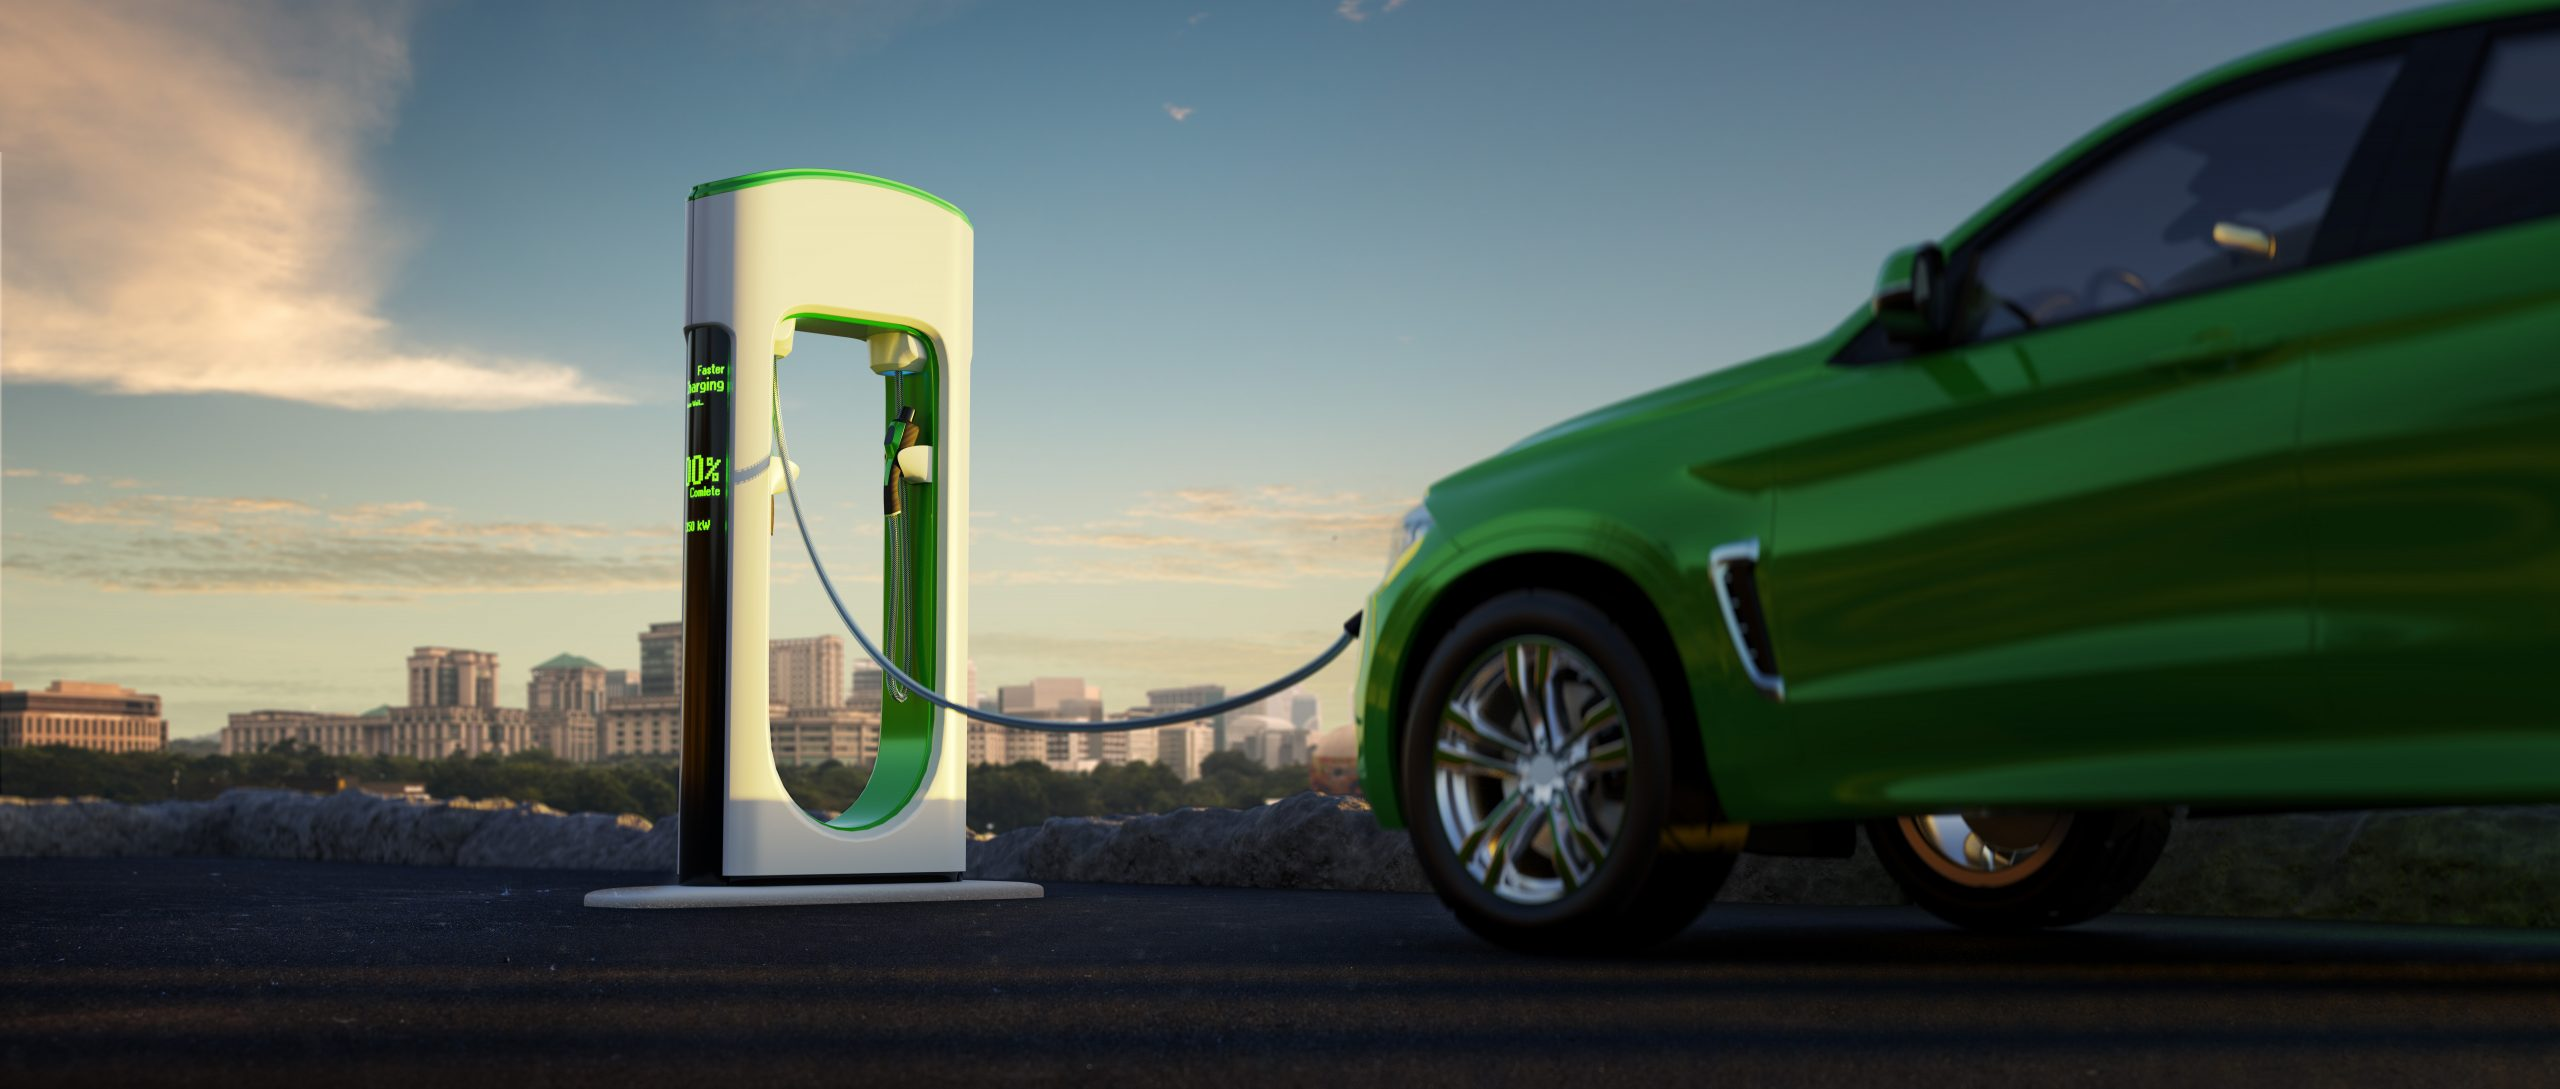 Electric car and EV charger city background